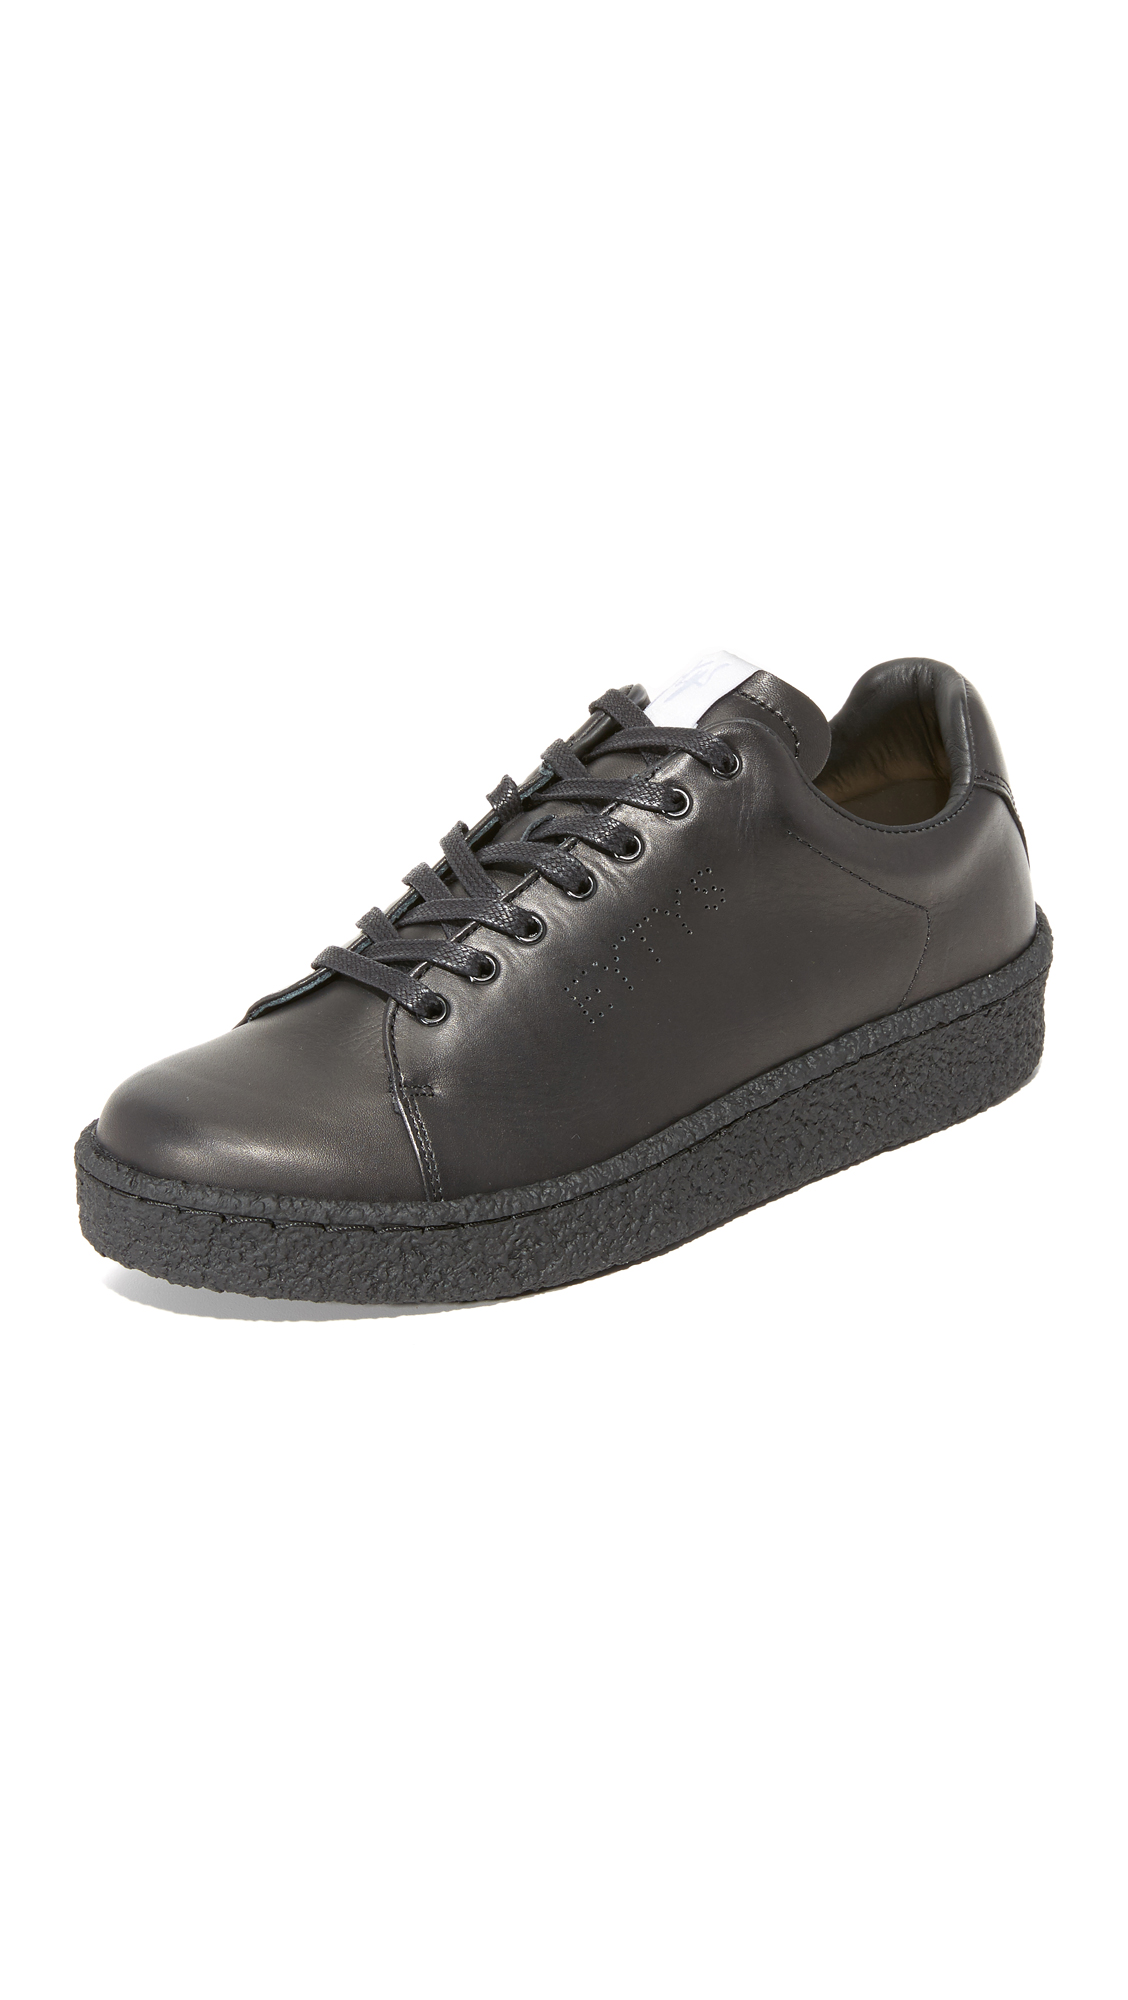 Eytys Ace Leather Sneakers - Black